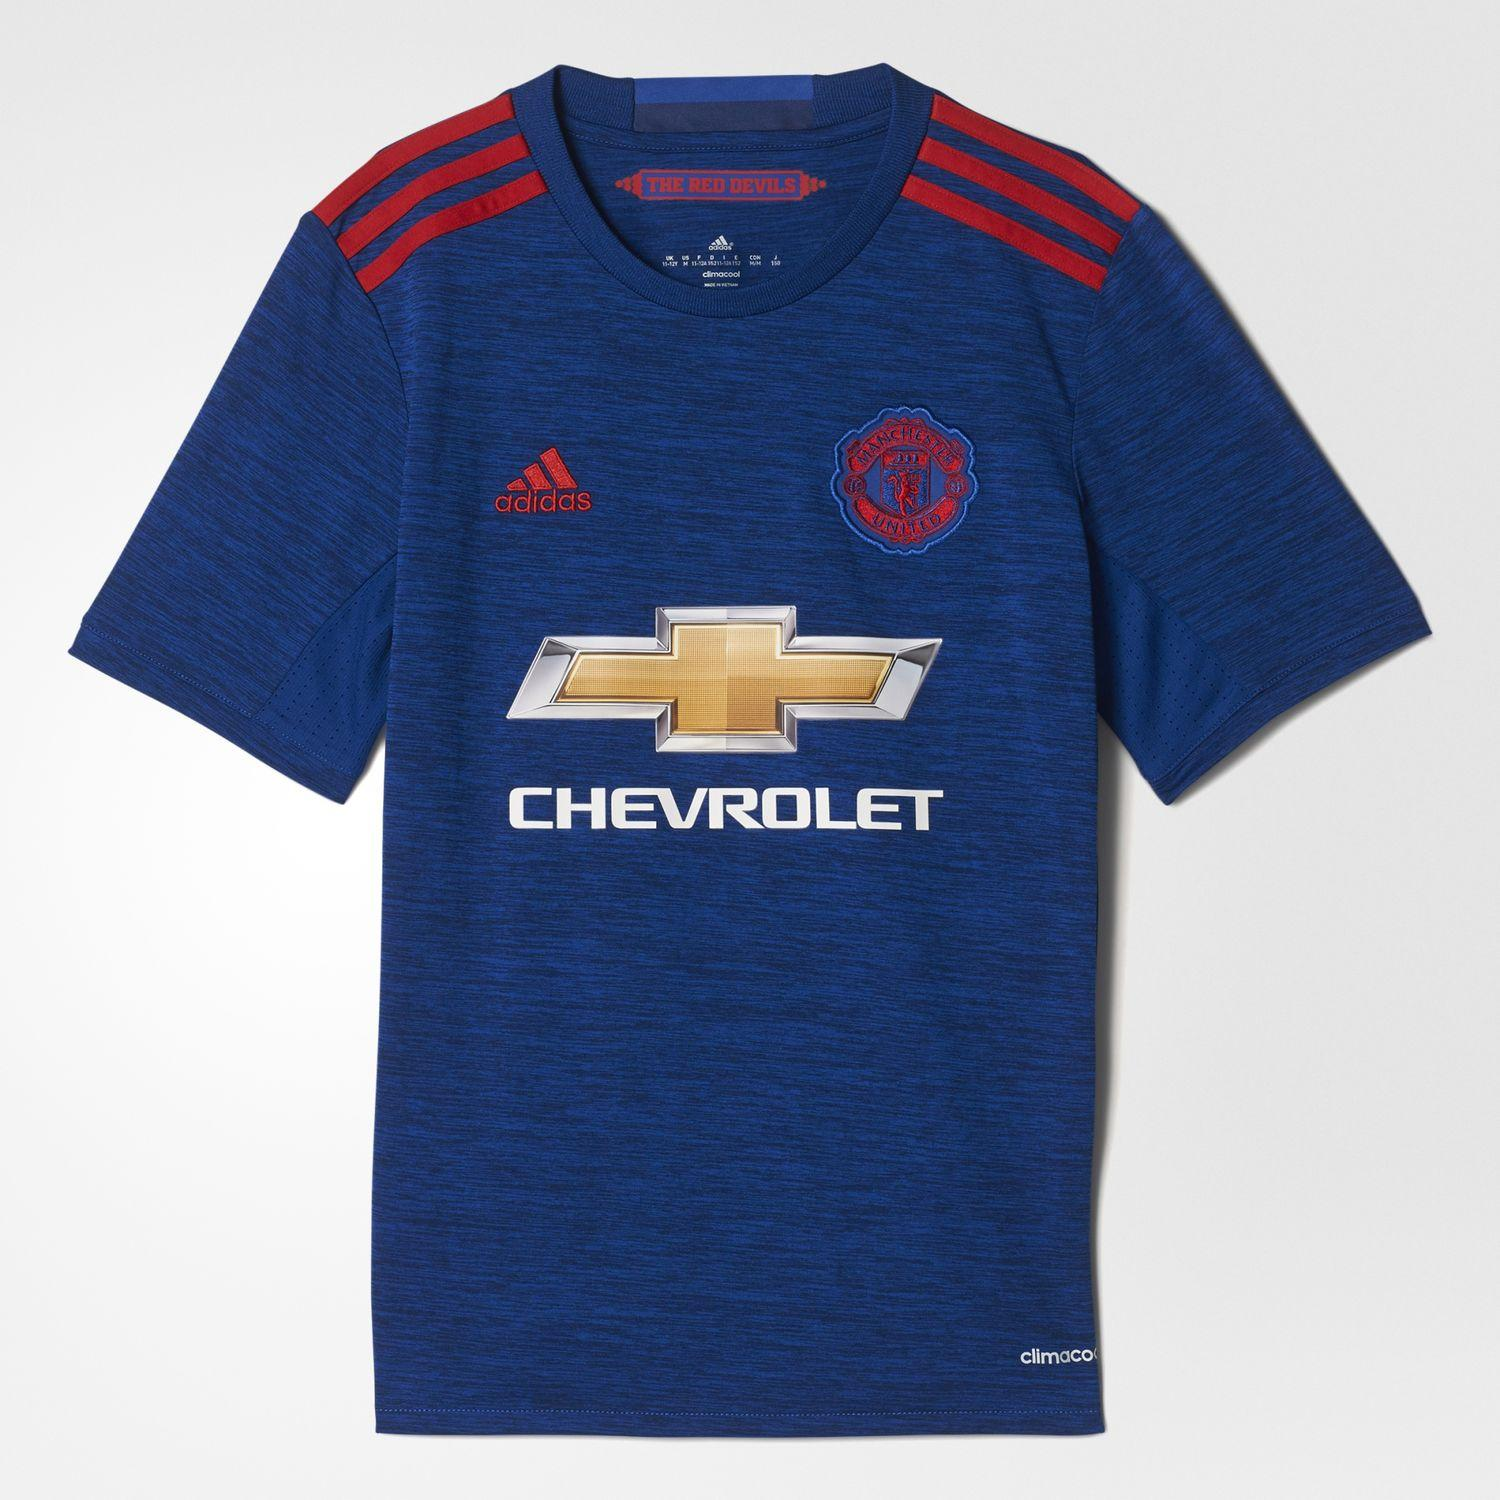 Adidas Maillot De Match Away Manchester United Enfant  16/17